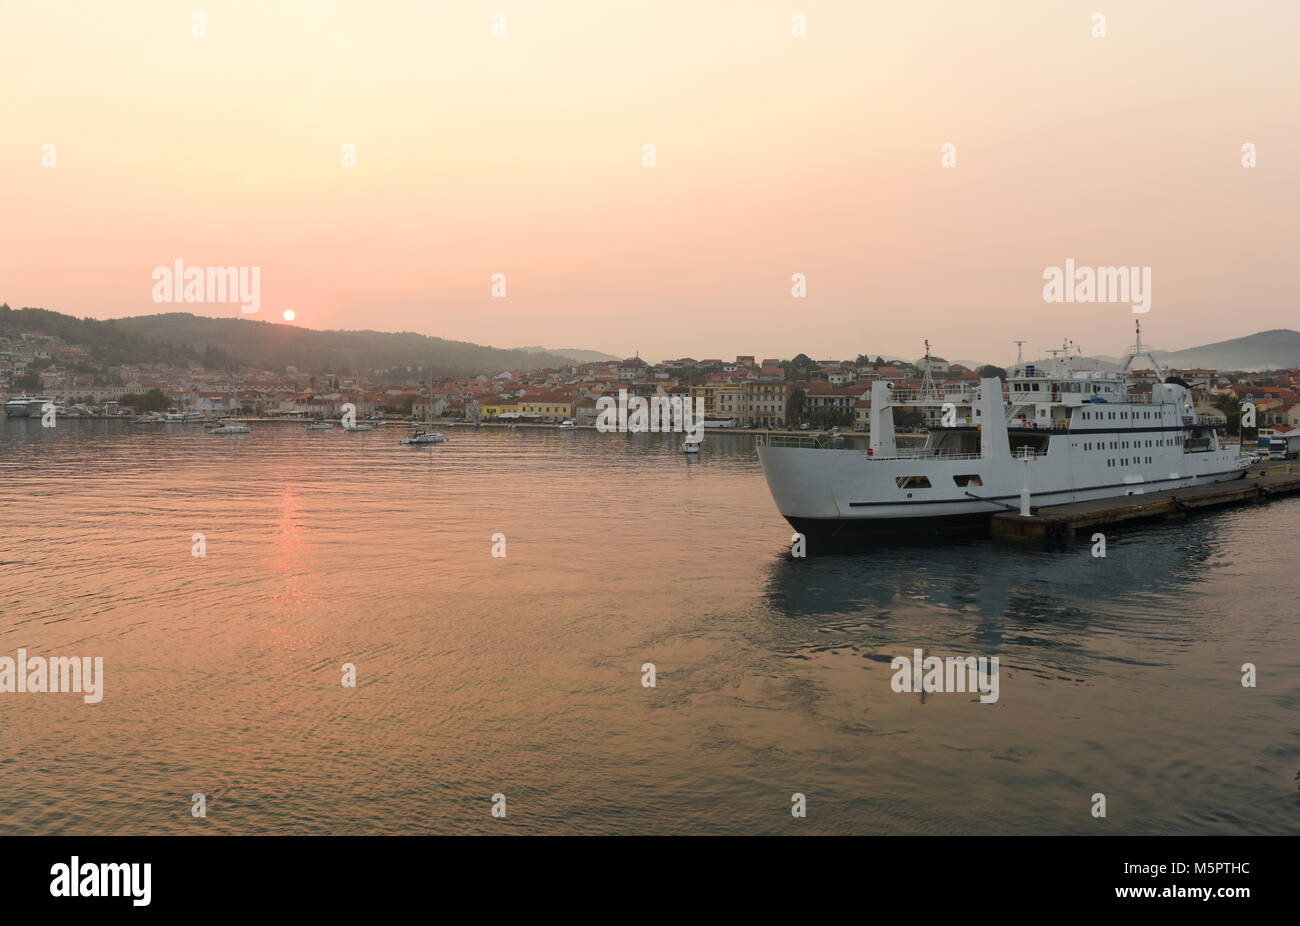 Sunrise in port of Vela Luka on island Korcula, Croatia. - Stock Image